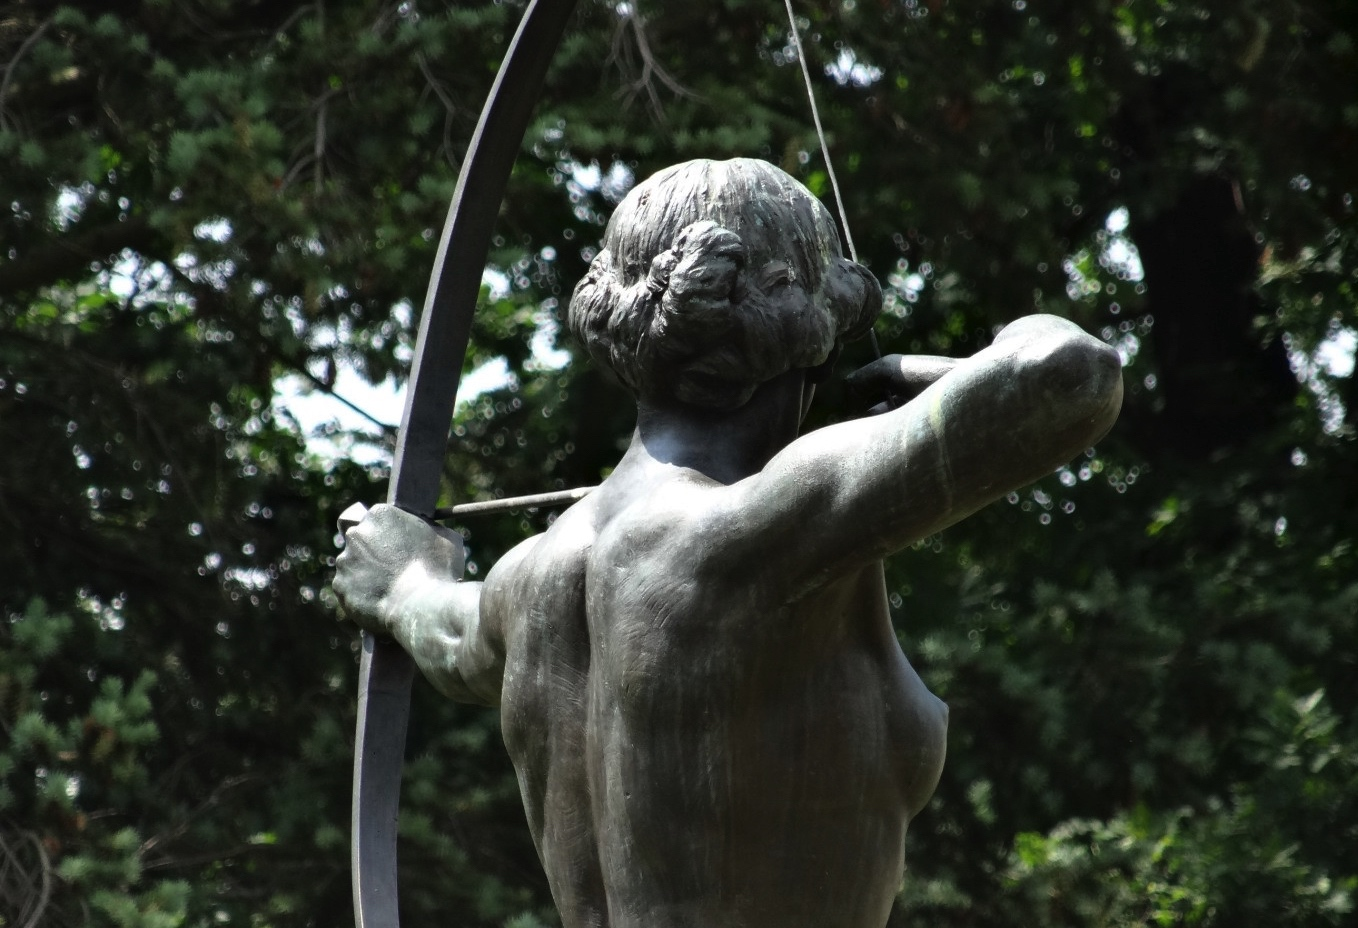 A statue of the goddess Artemis